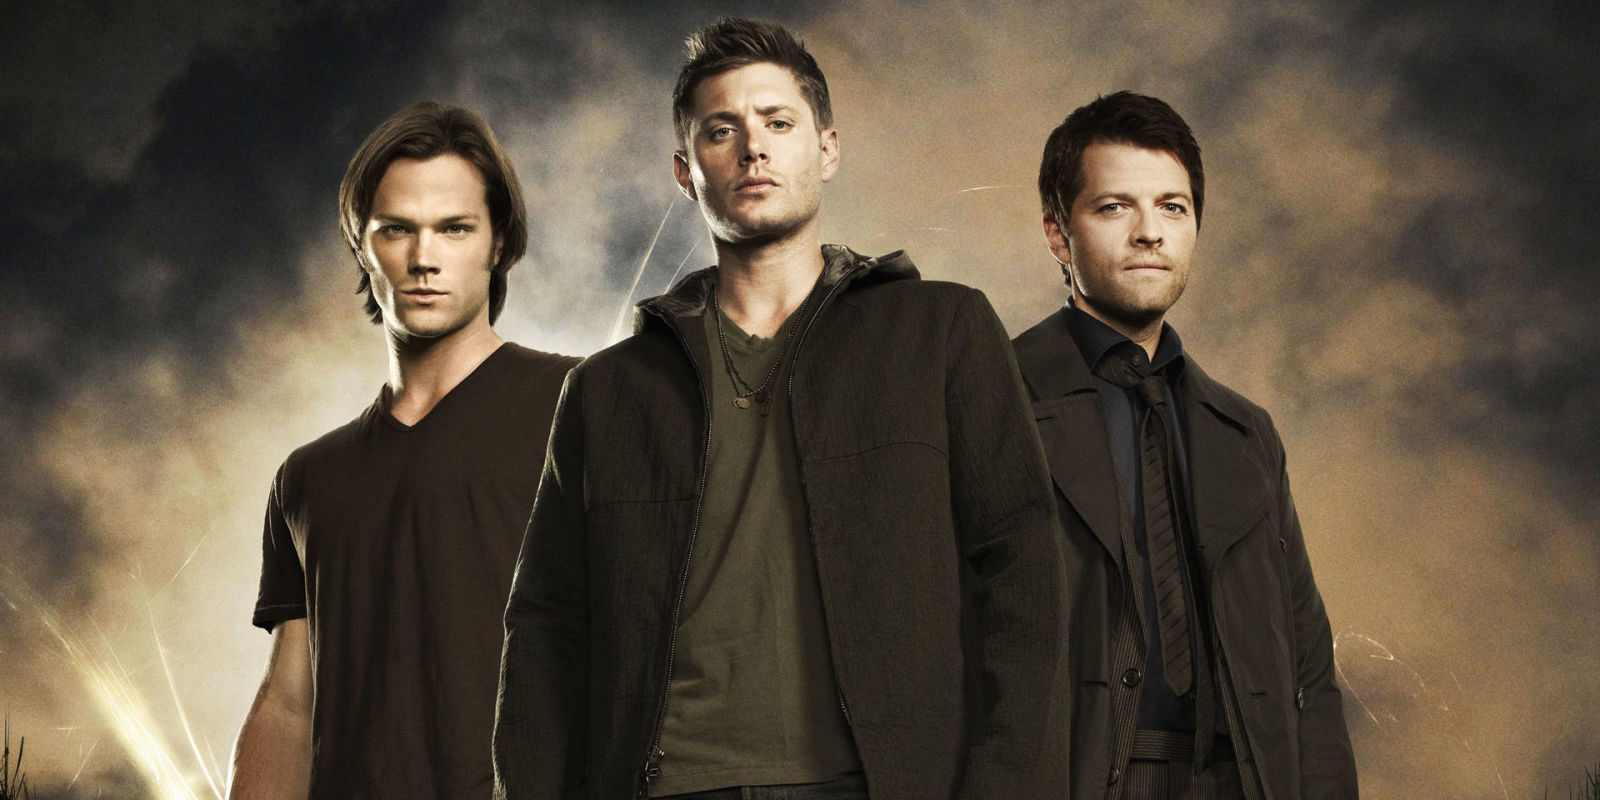 Supernatural season 13 episodes, spoilers, trailer ...